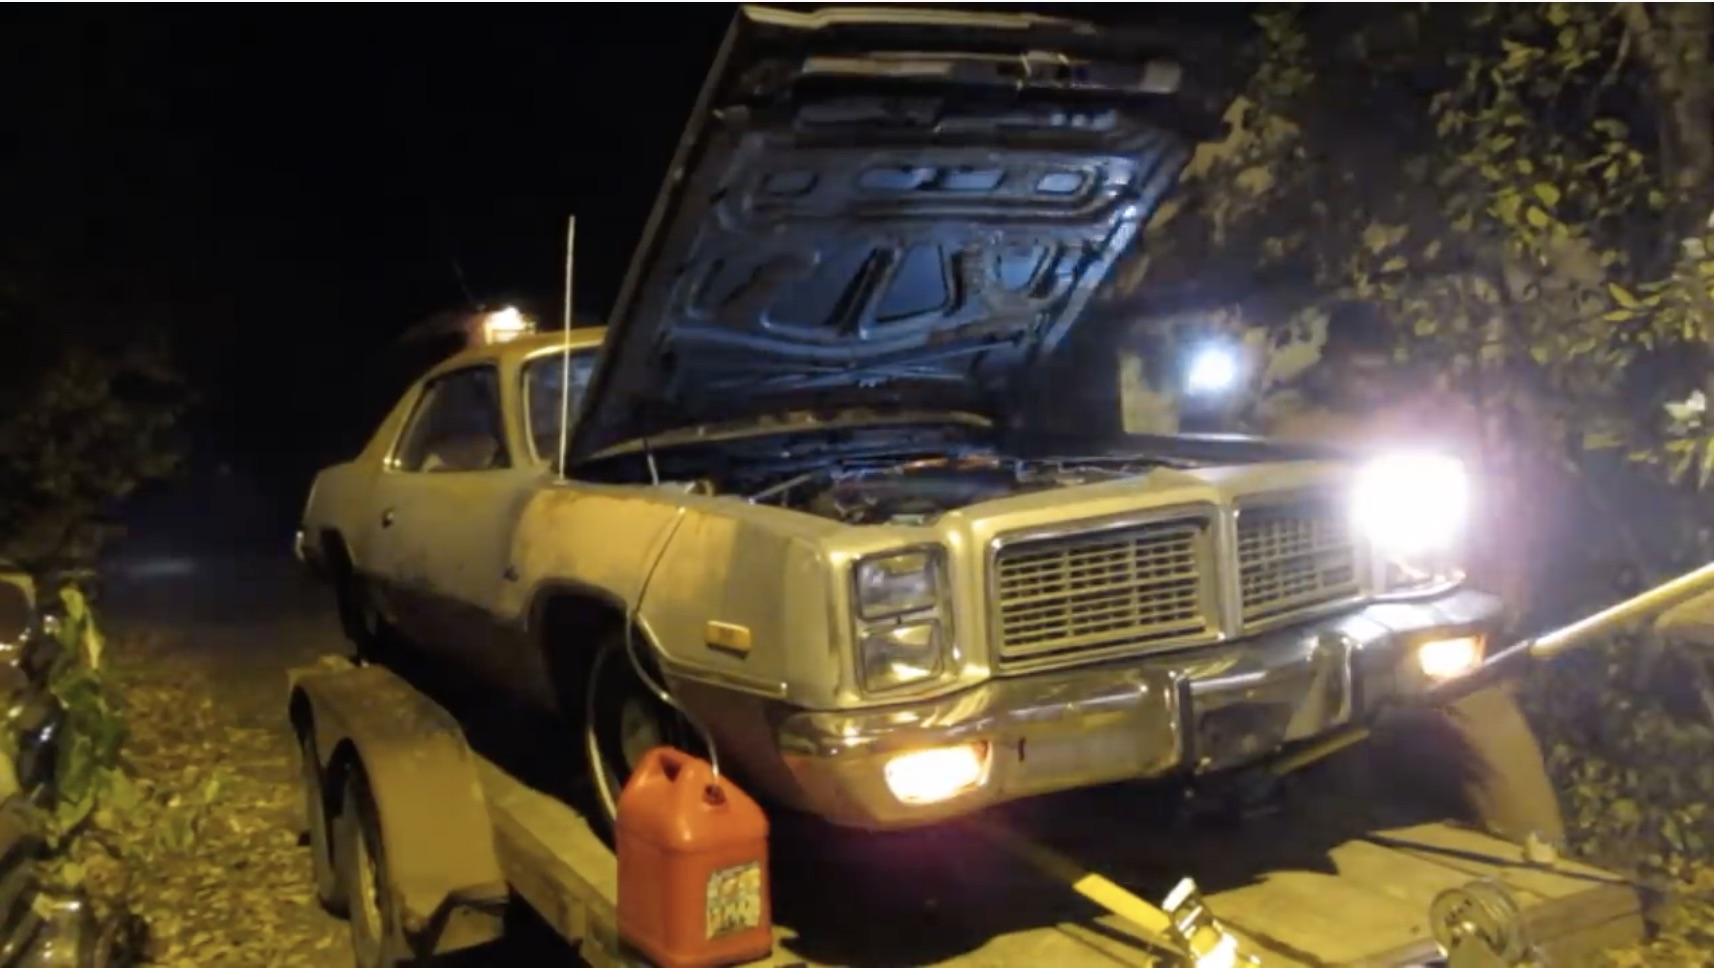 Unhinged: More Mopar Musings And A Monaco With A Three On The Tree